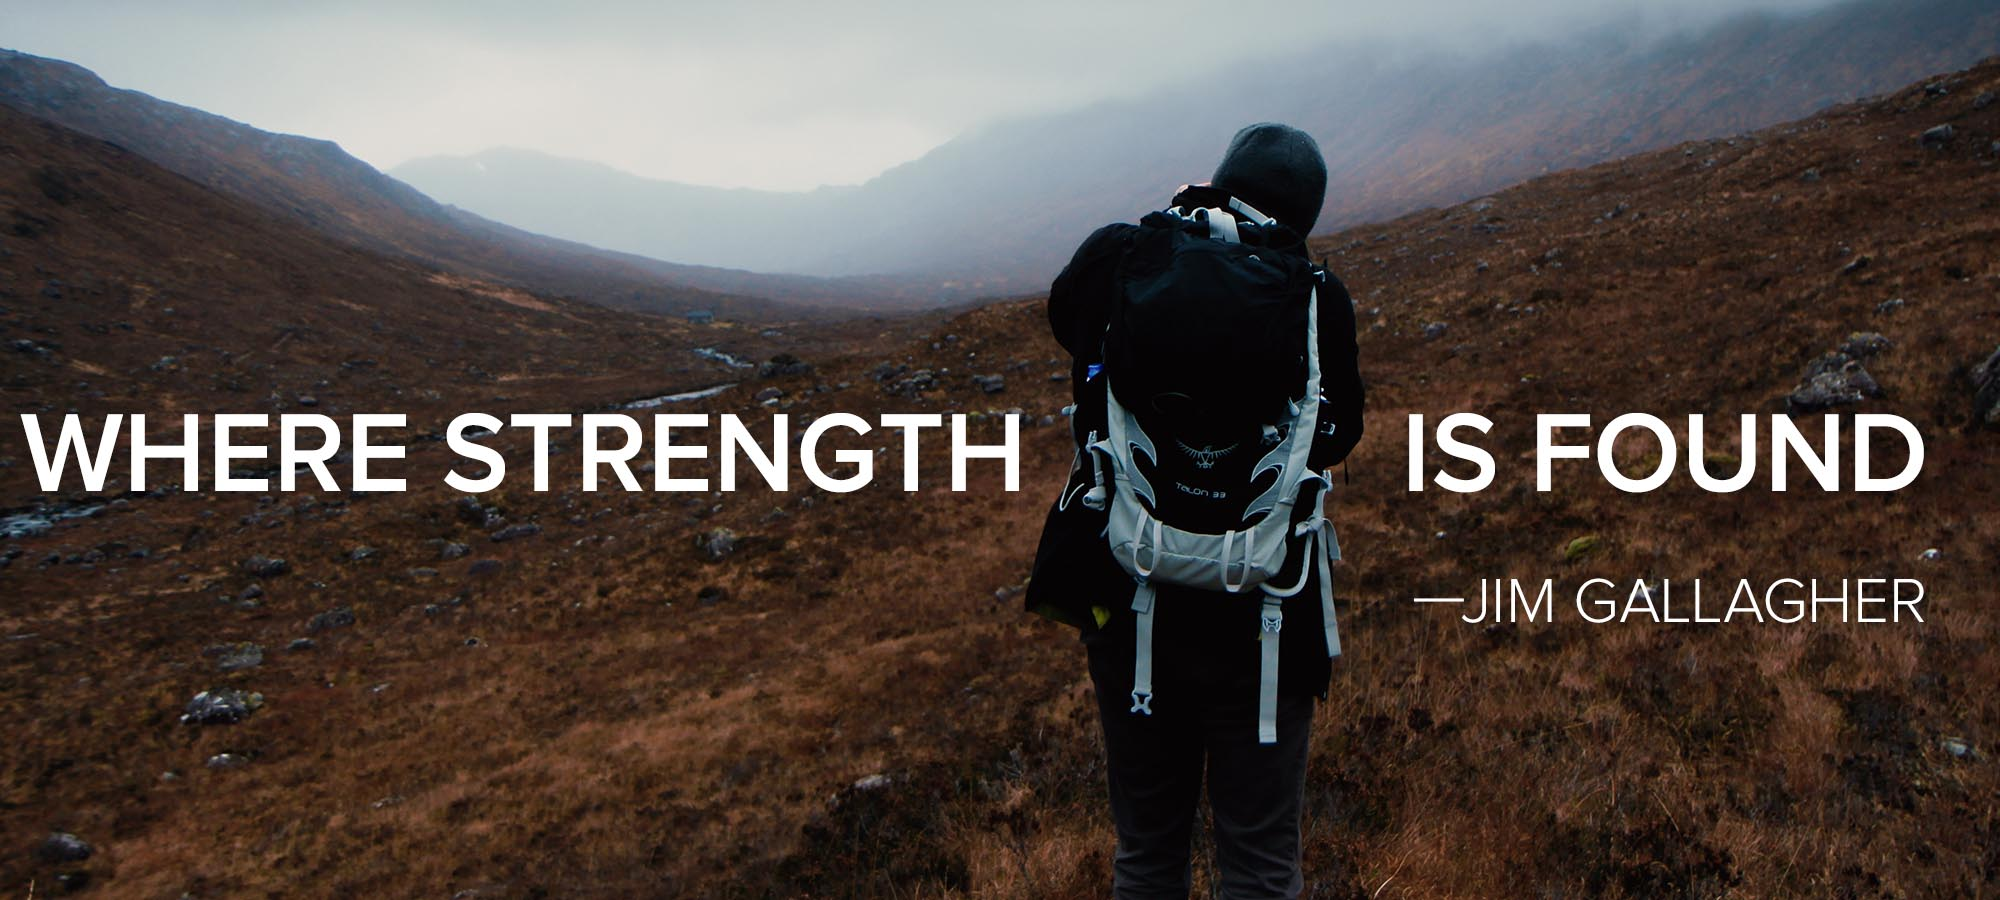 Where Strength is Found